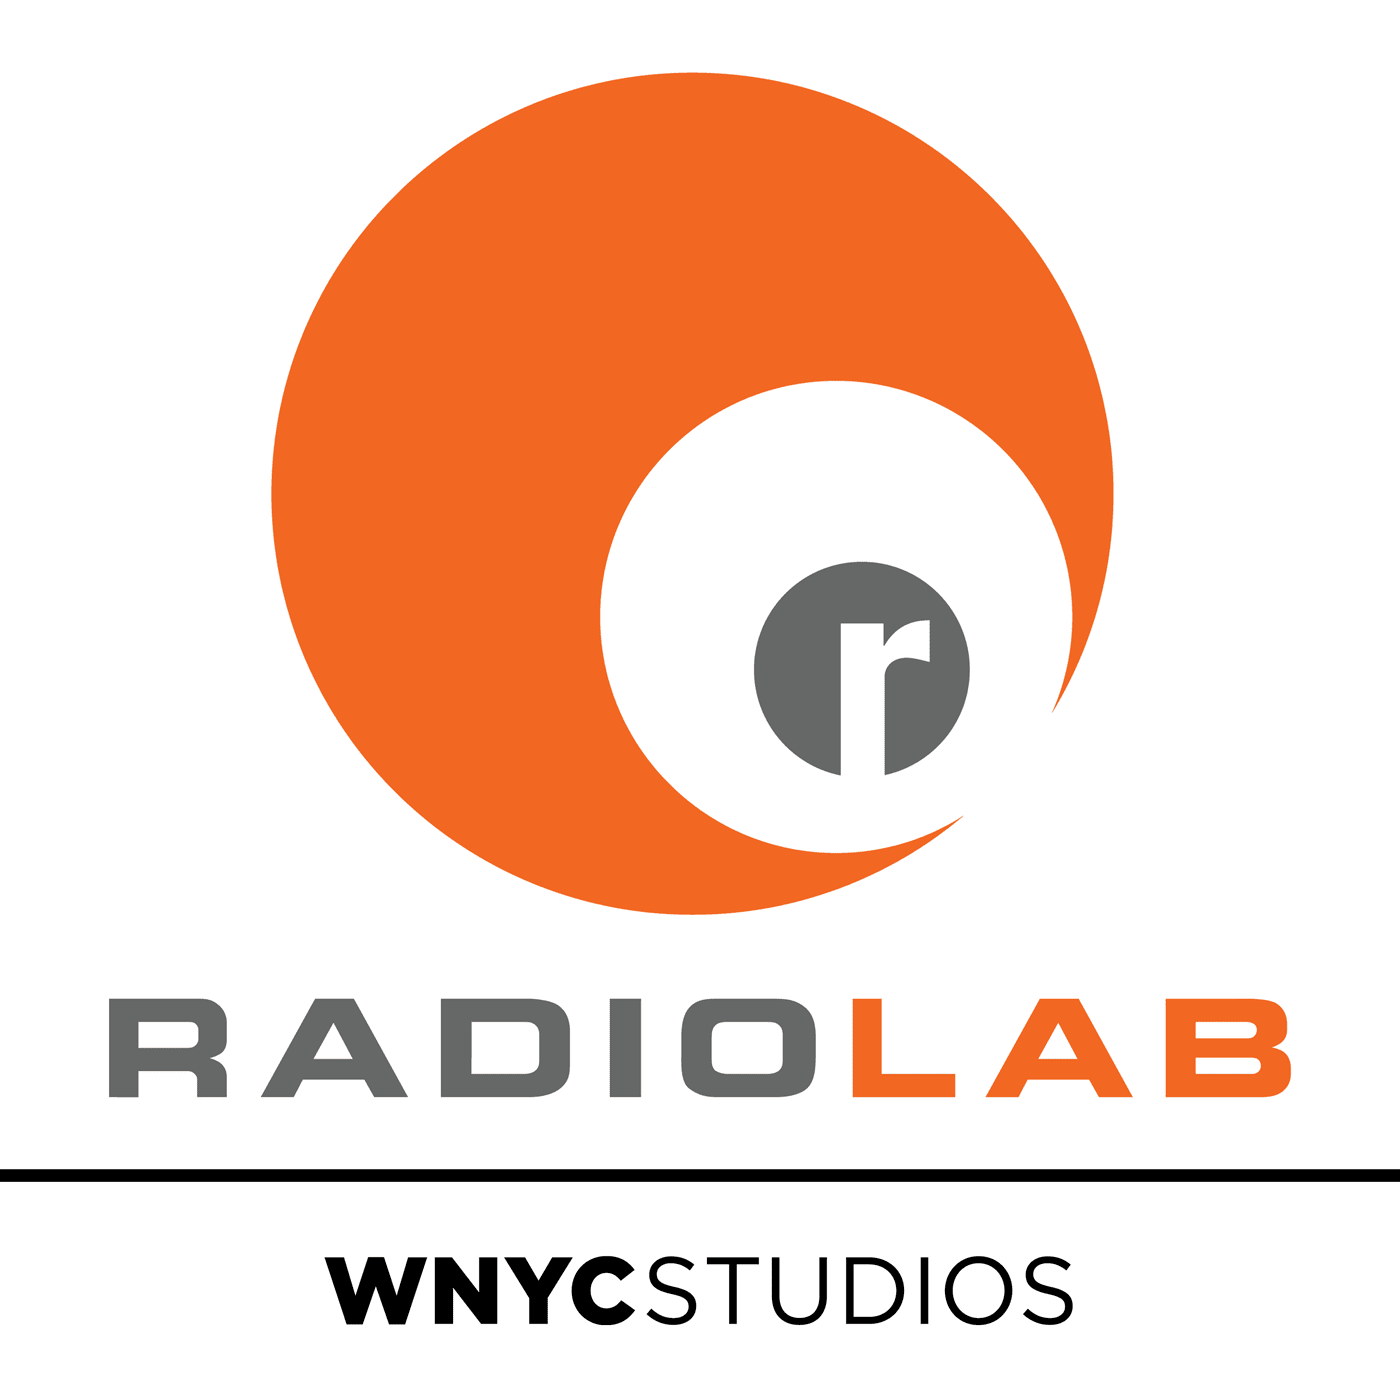 Radiolab Podcasts